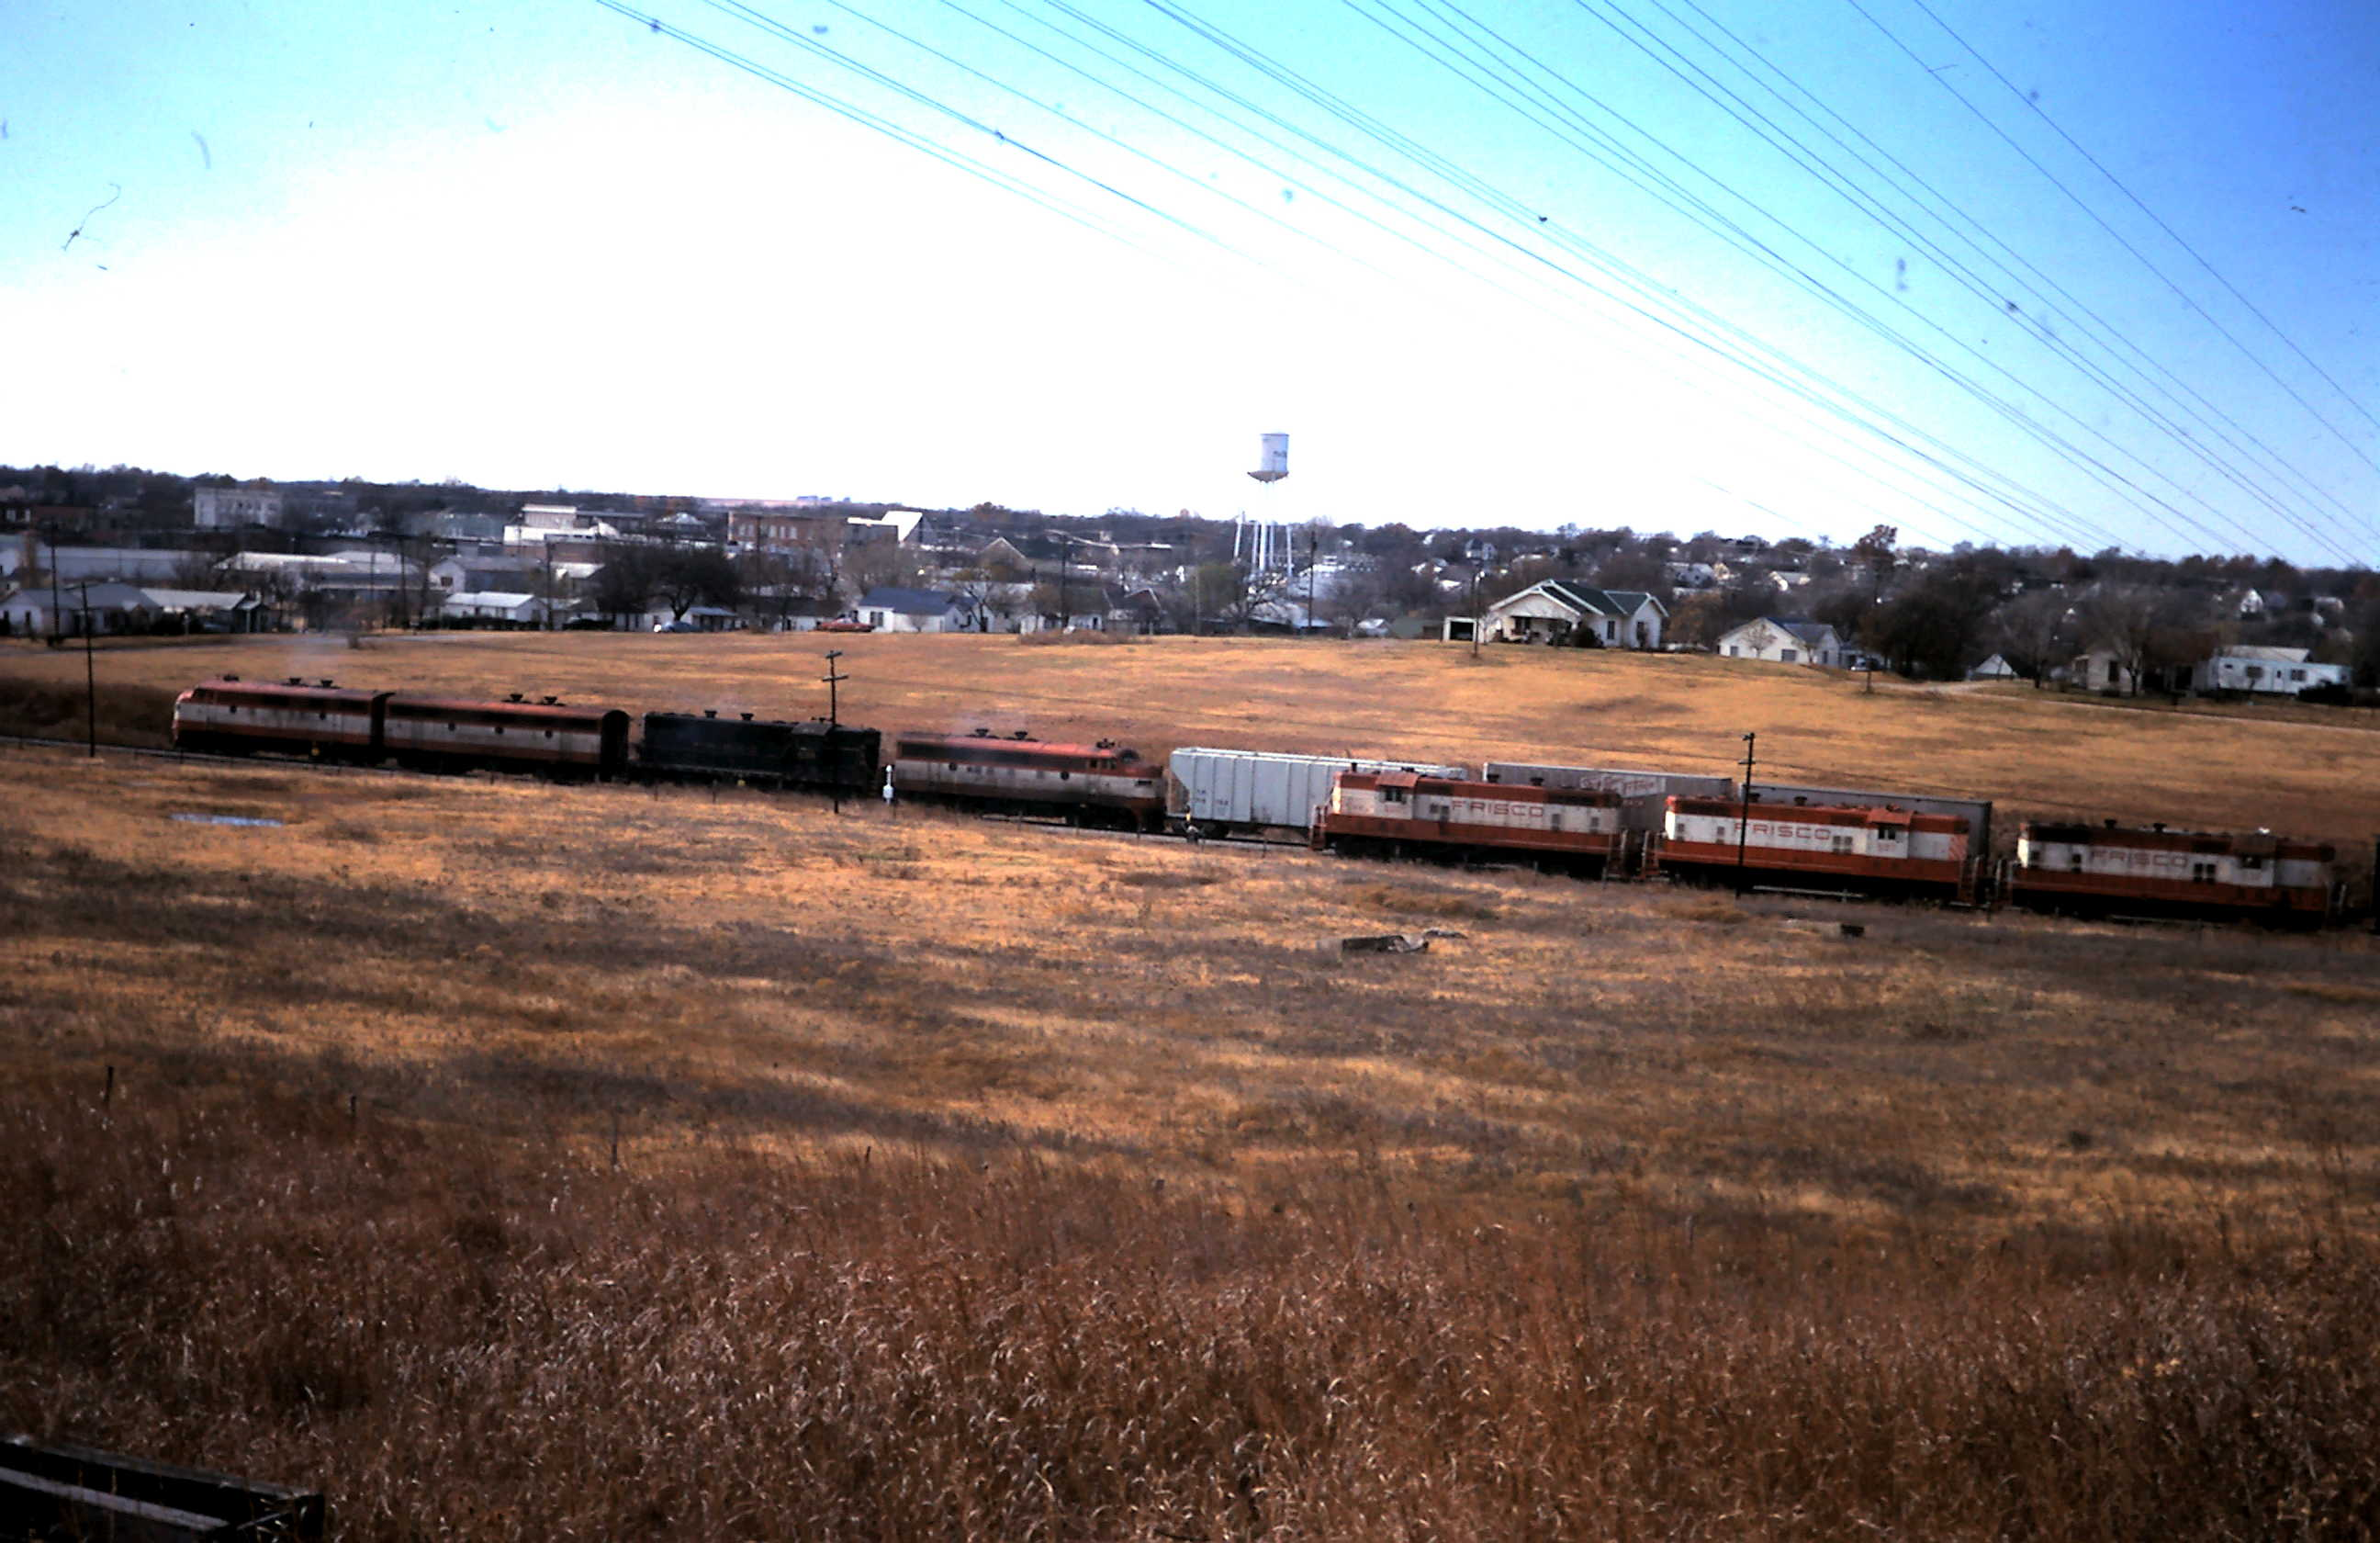 Unidentified Frisco Units (date and location unknown)